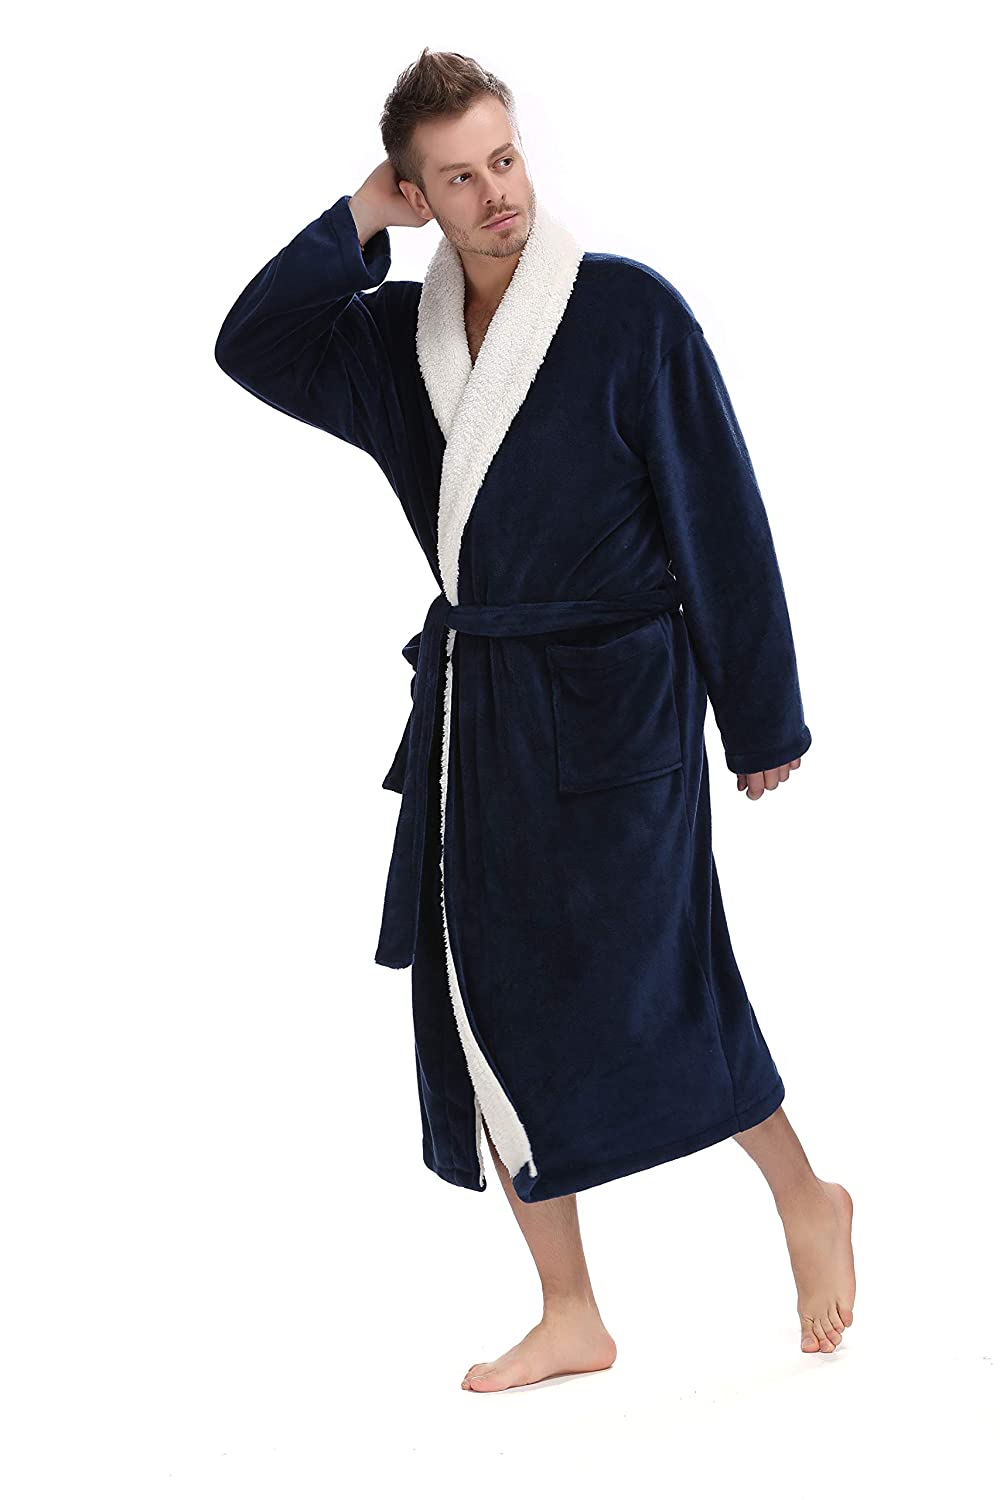 Mens Robe - Sherpa Kimono Shawl Collar Bathrobe Comfy Spa Bath Robe S-XL